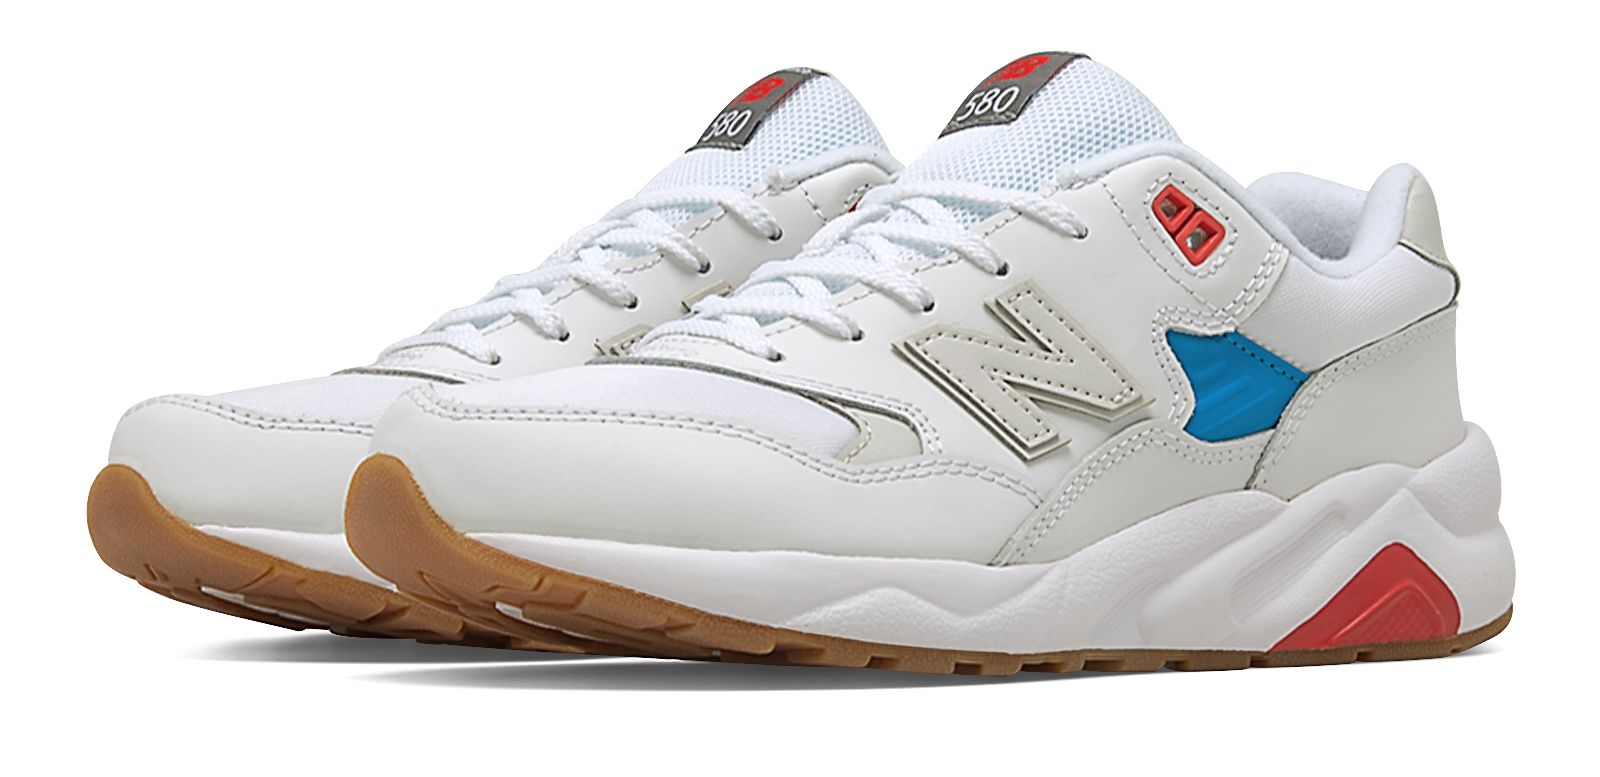 NB 580 New Balance, White with Bolt & Red